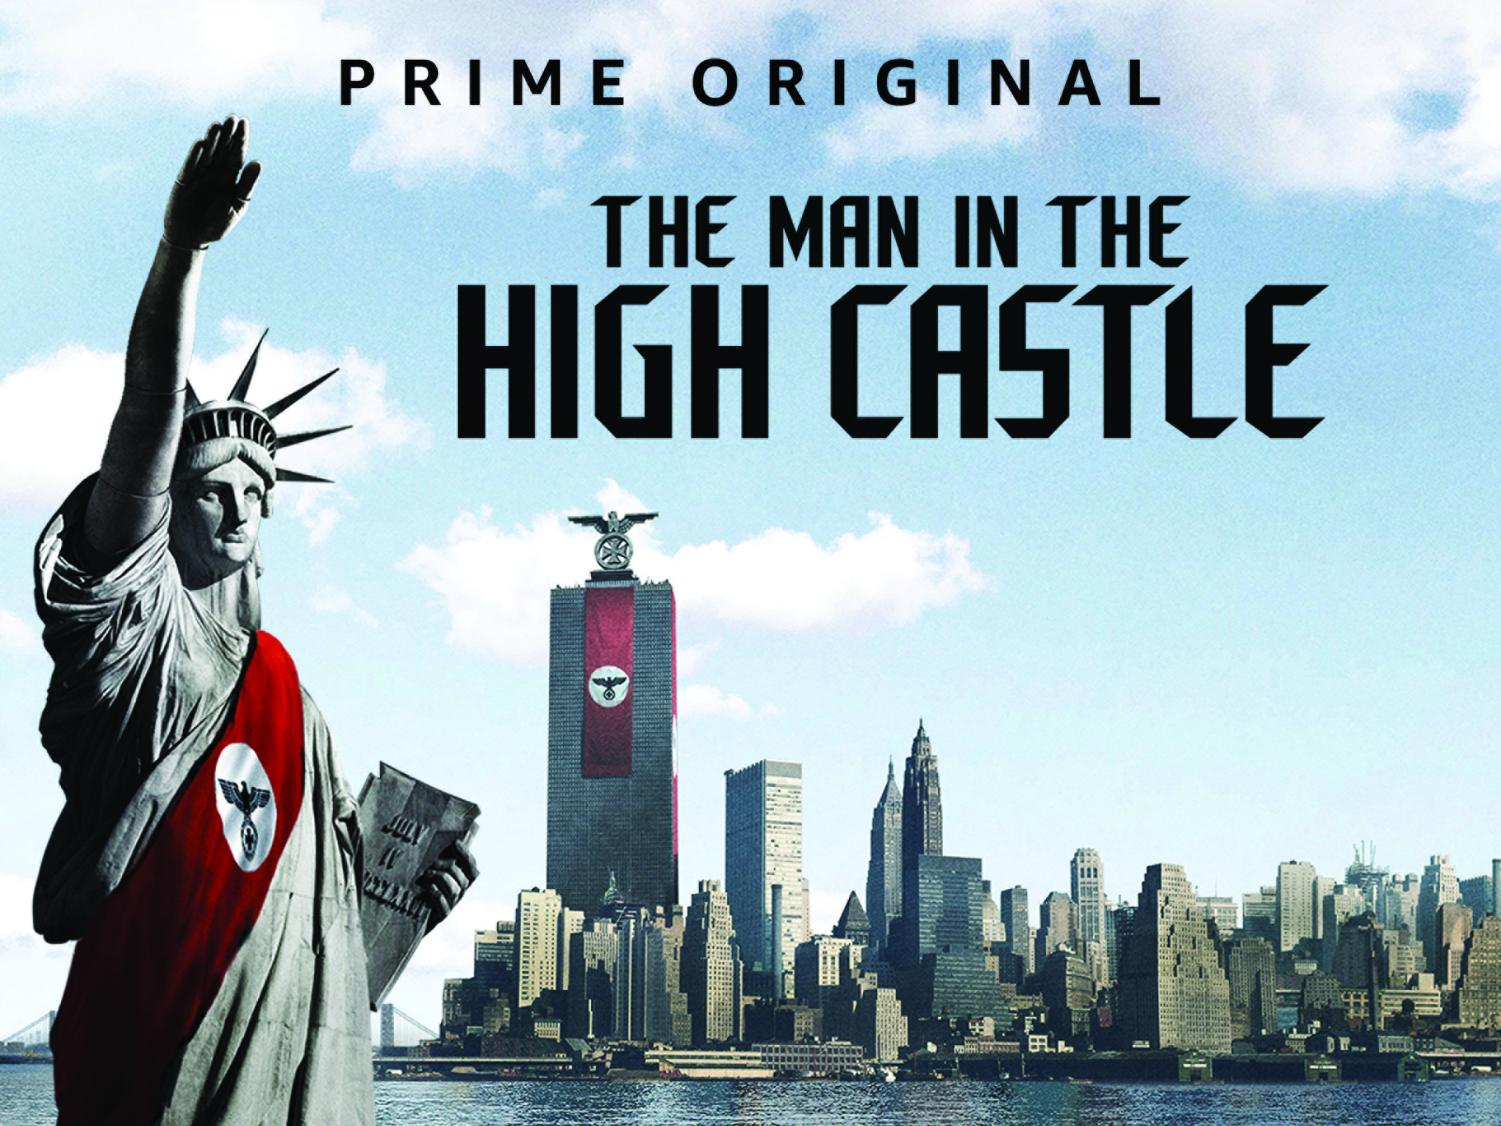 Promotional banner showcases some of the main themes of the Amazon Prime Original series.